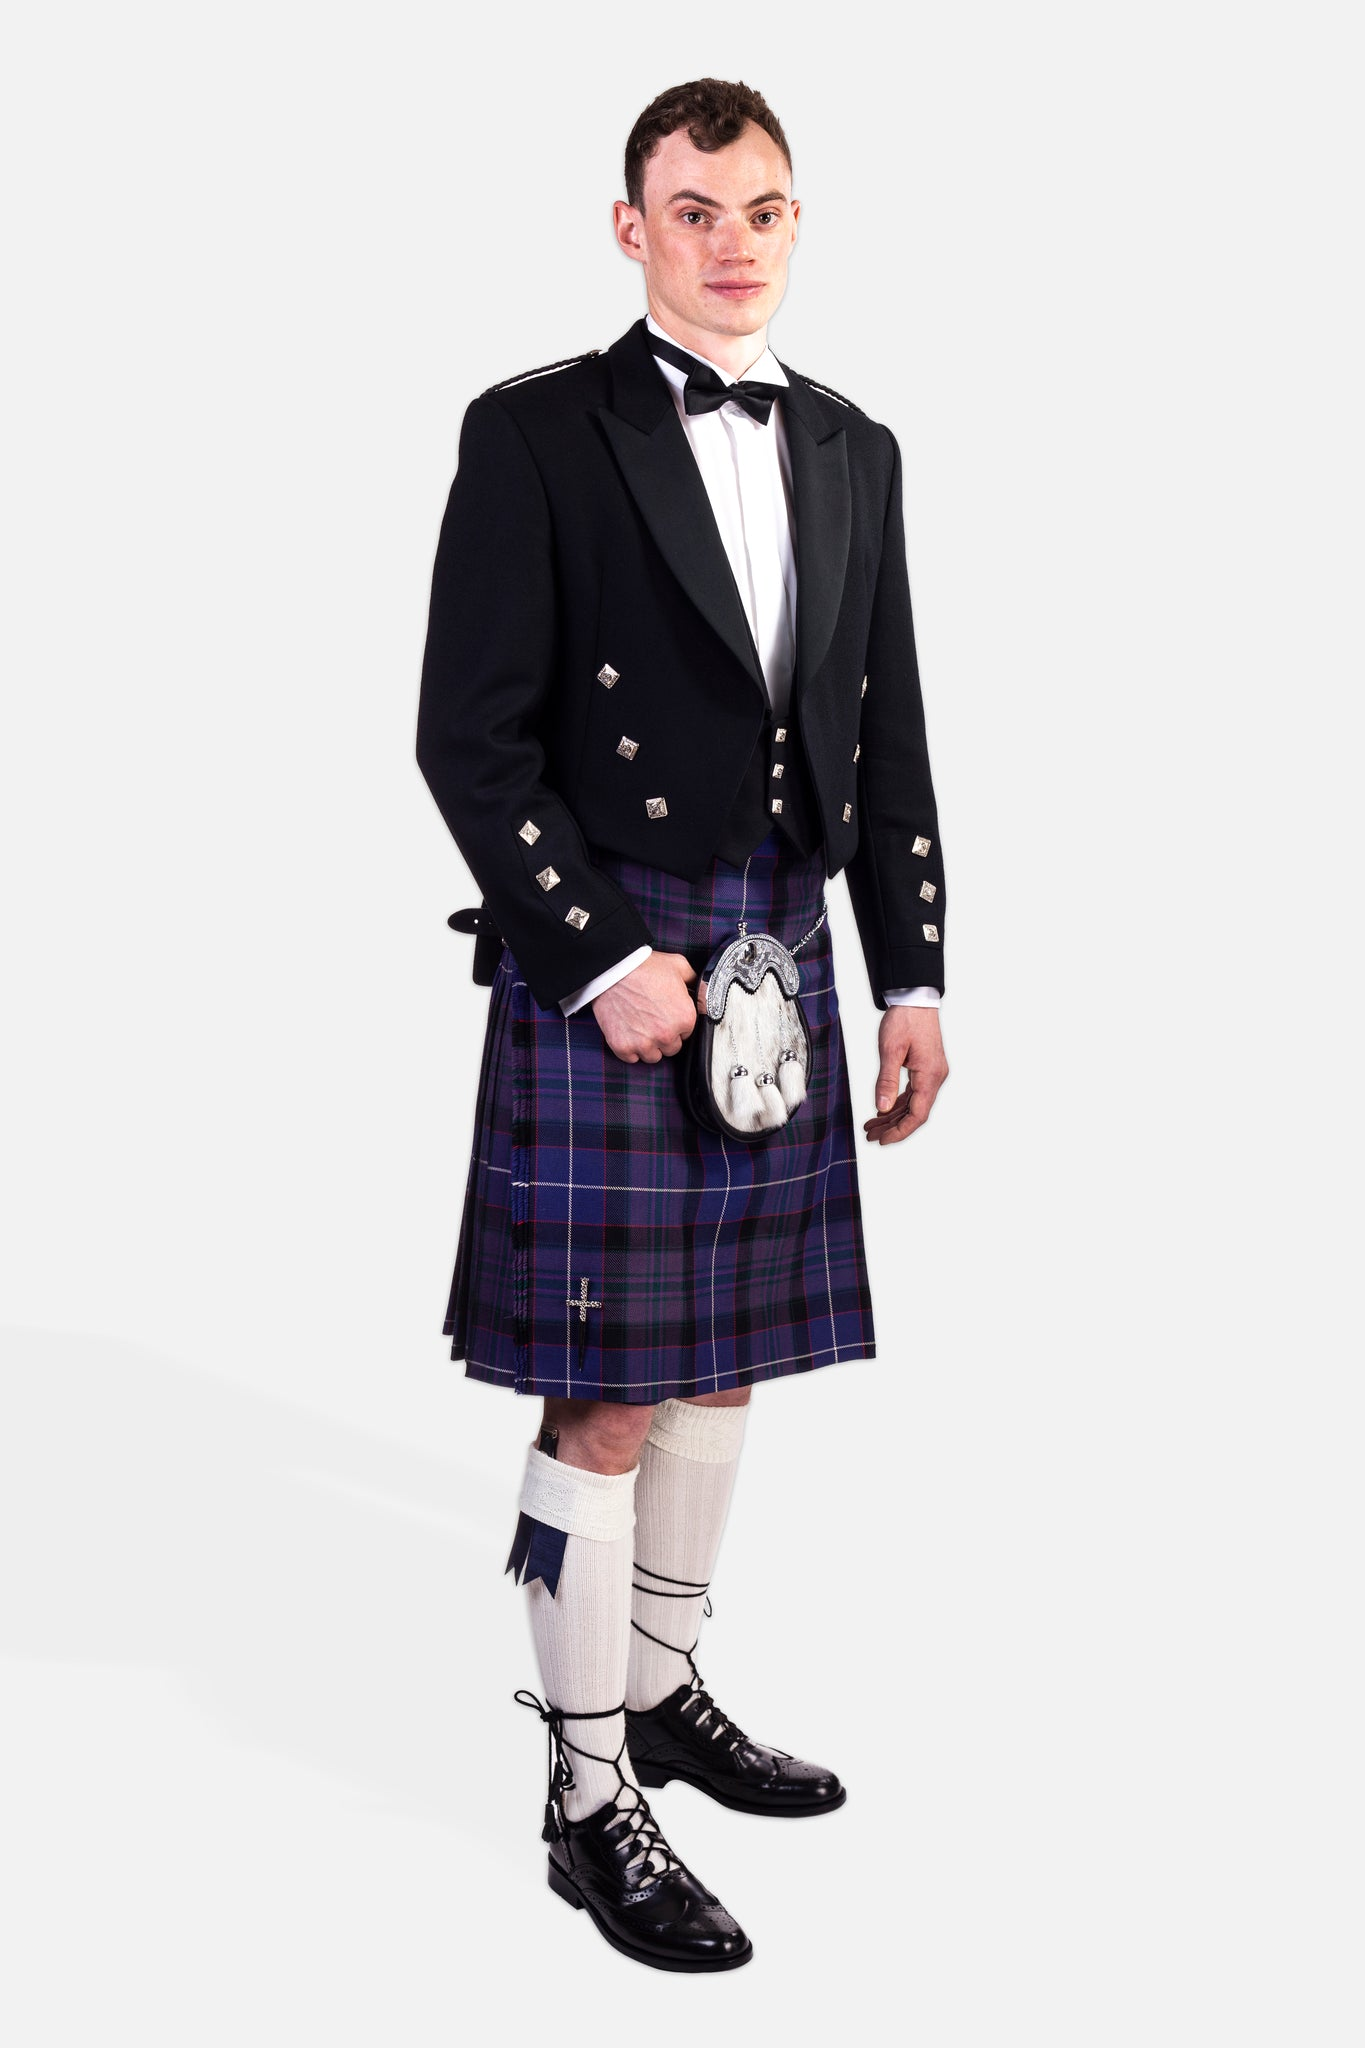 Western Isles / Prince Charlie Hire Outfit